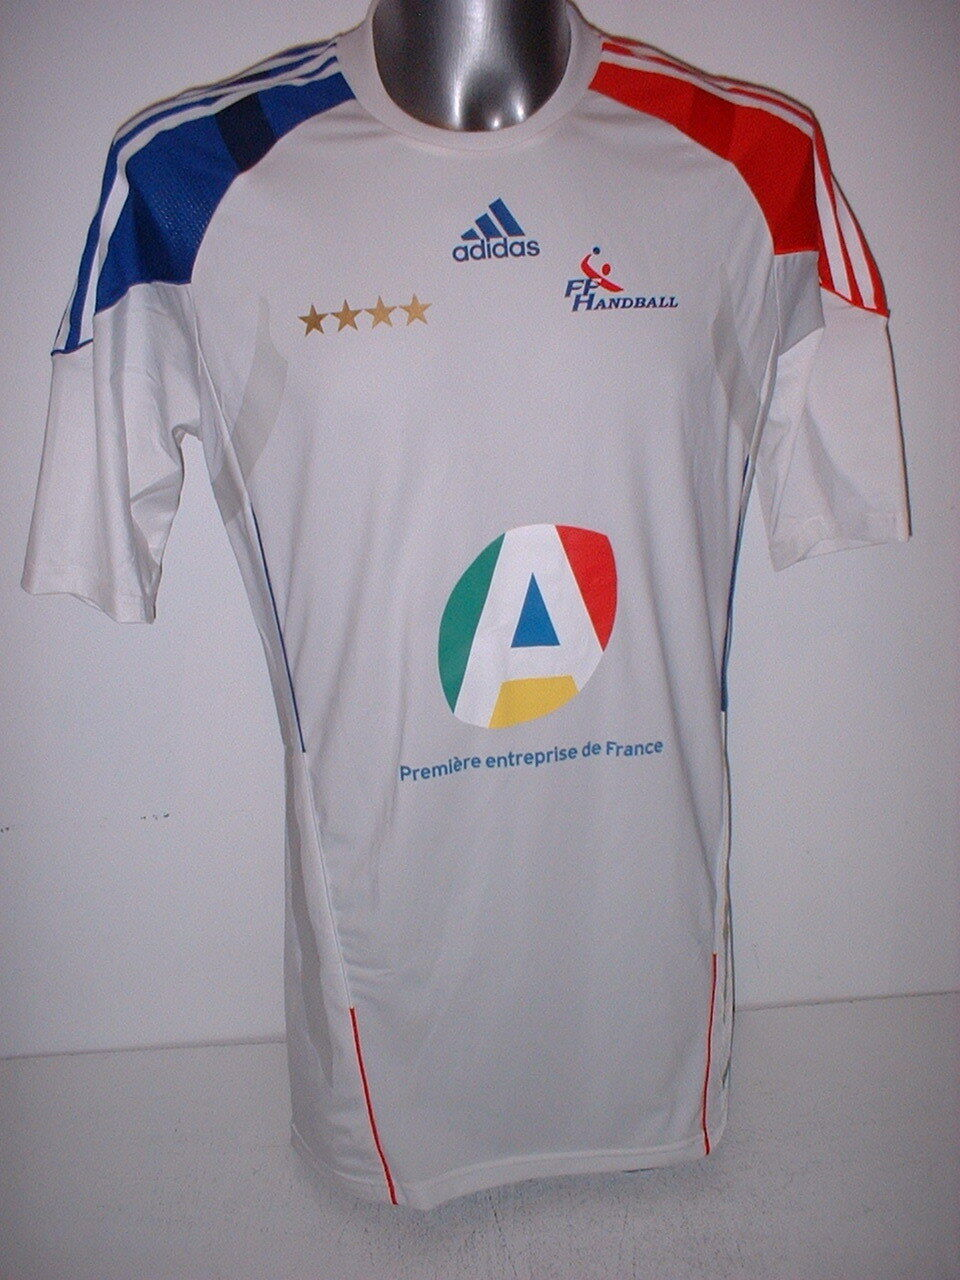 France Handball Adult XL Player Adidas Shirt Jersey Top Trikot National Techfit